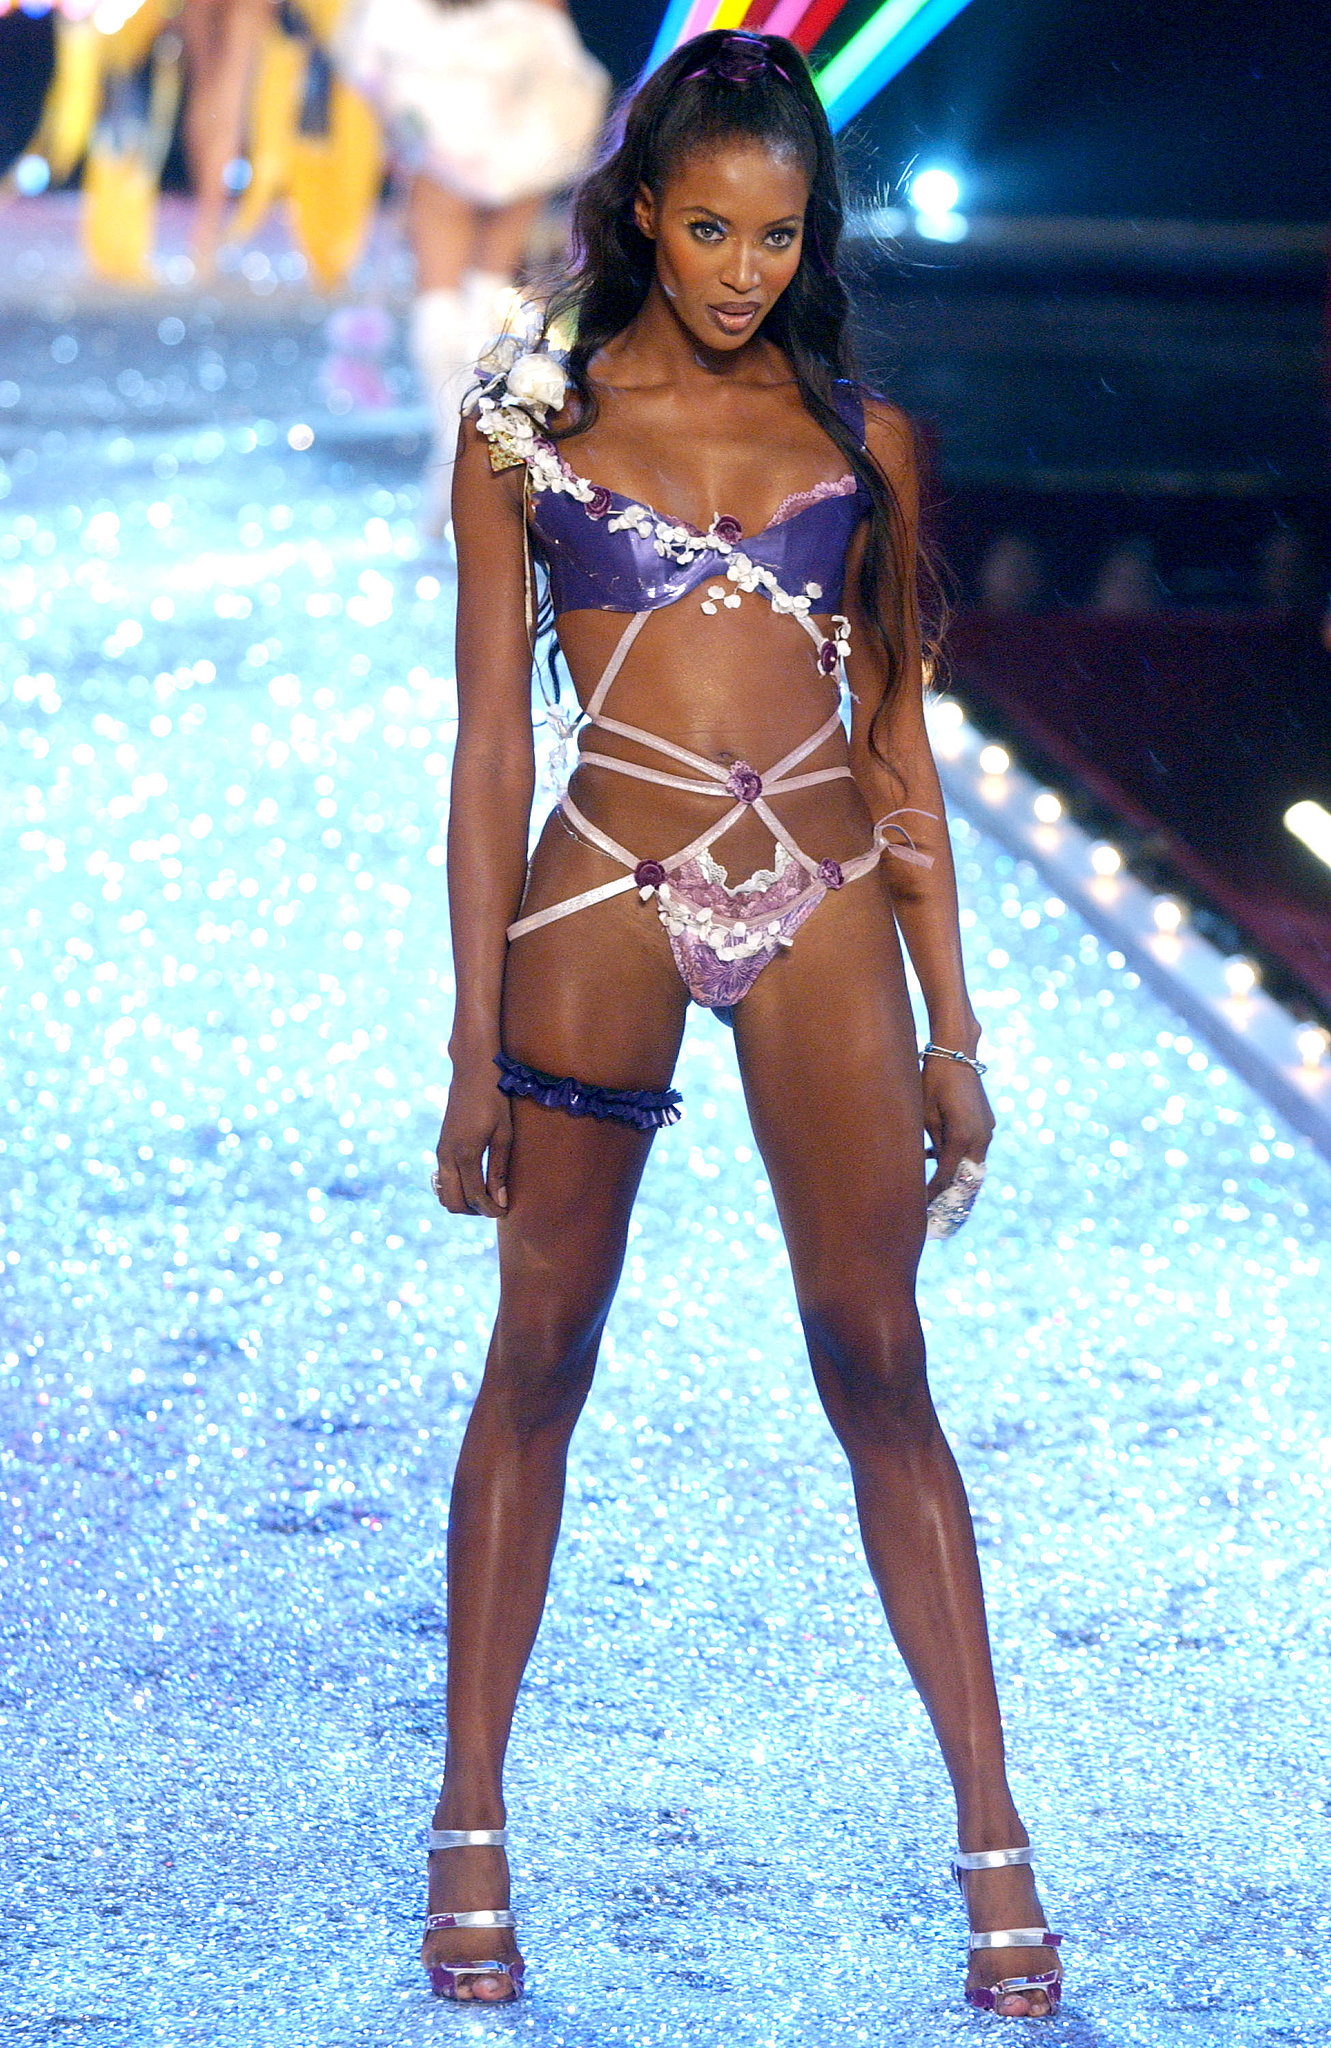 Naomi Campbell wore a bright purple, barely-there look on the 2003 runway.